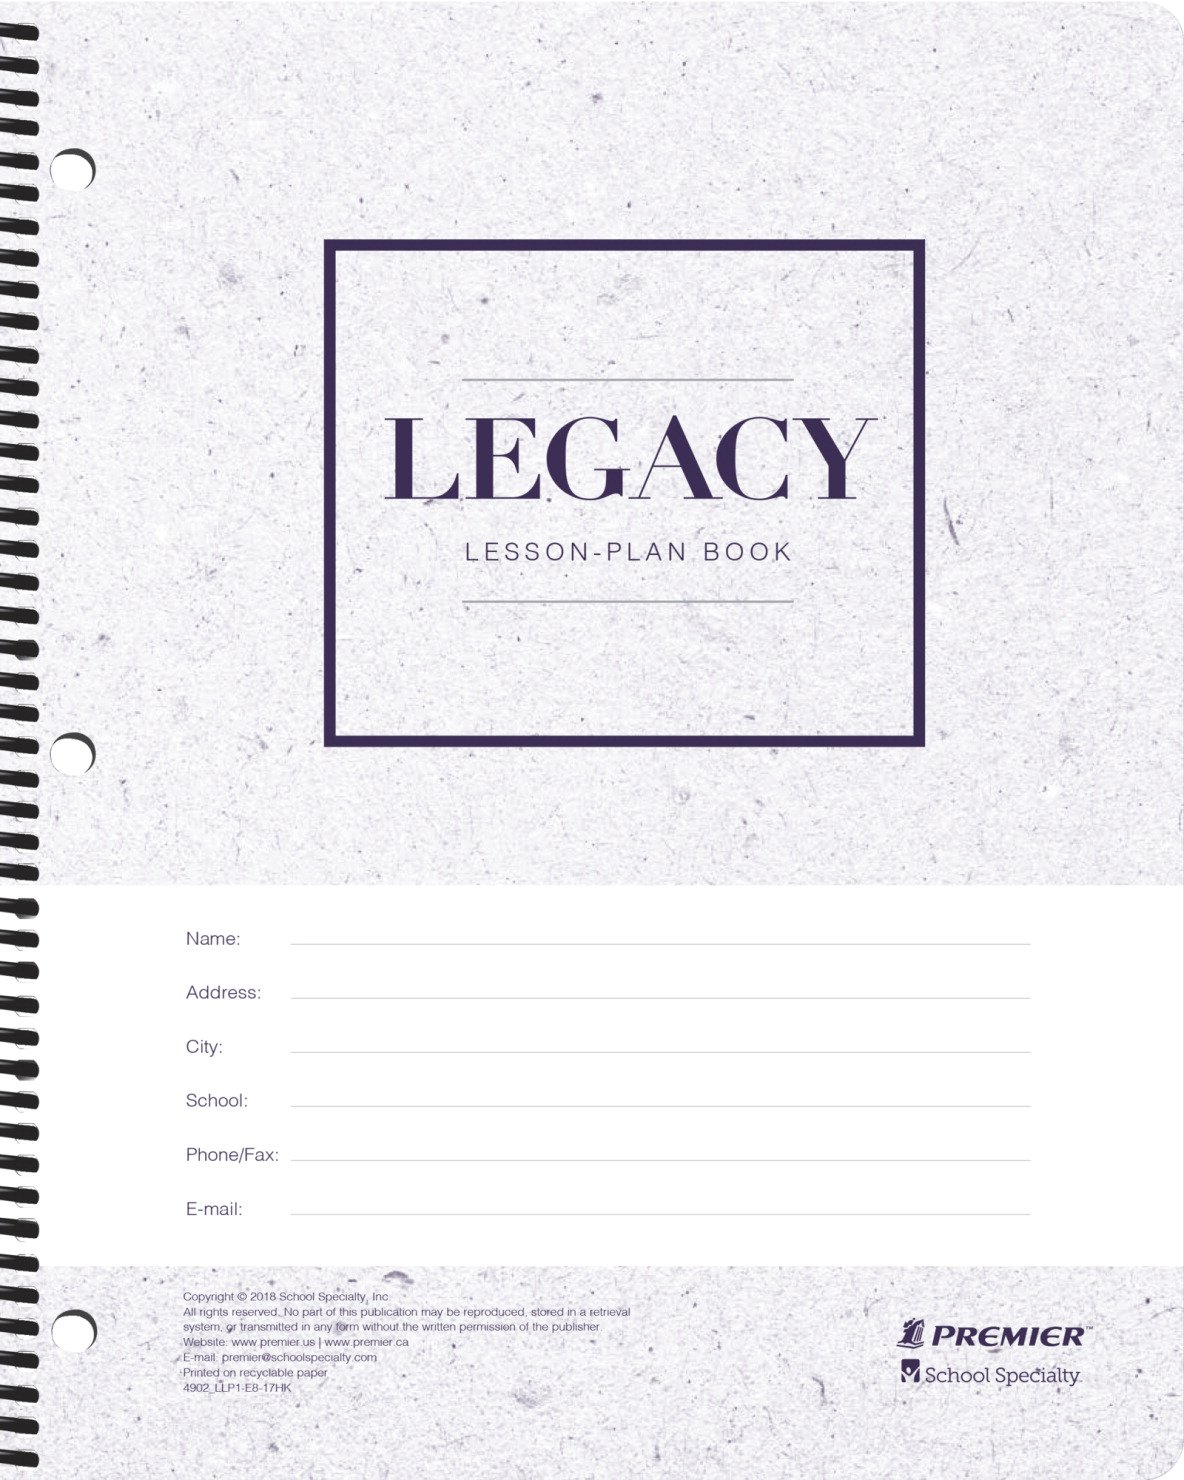 Premier 1597152 Legacy Weekly Lesson Plan Book, 256 Pages, 2018 to 2019, Null